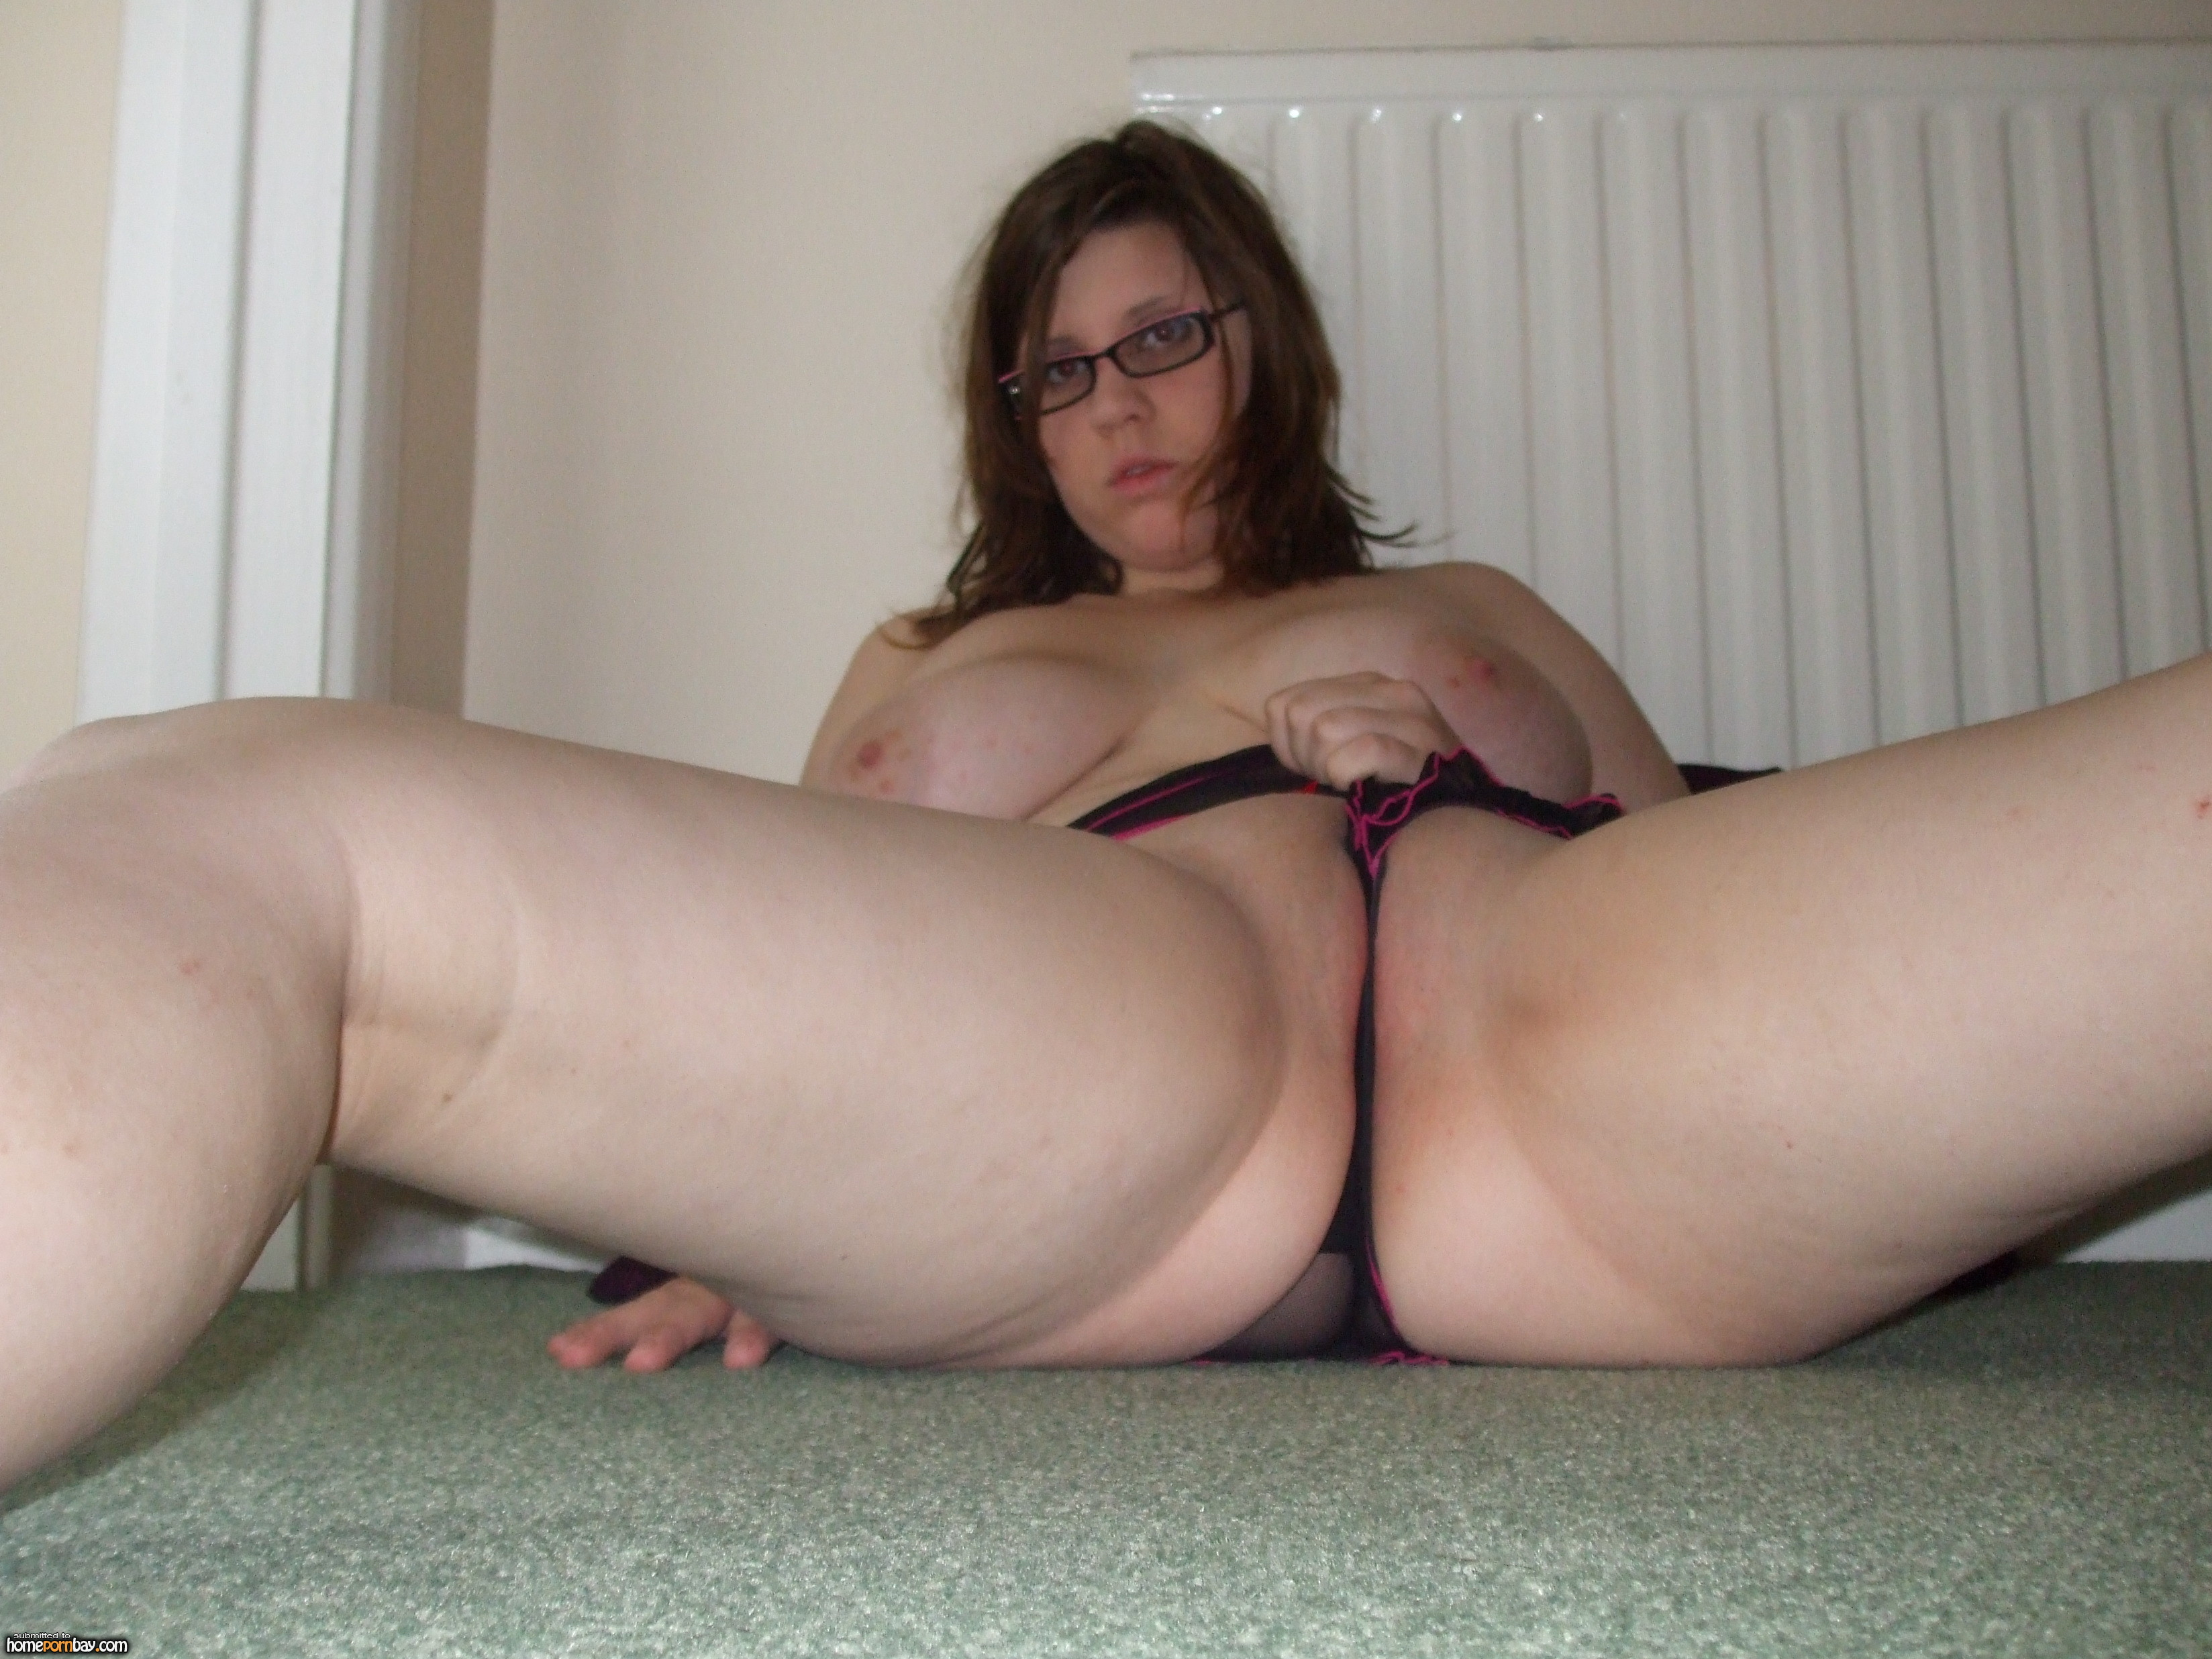 young naked geek girl